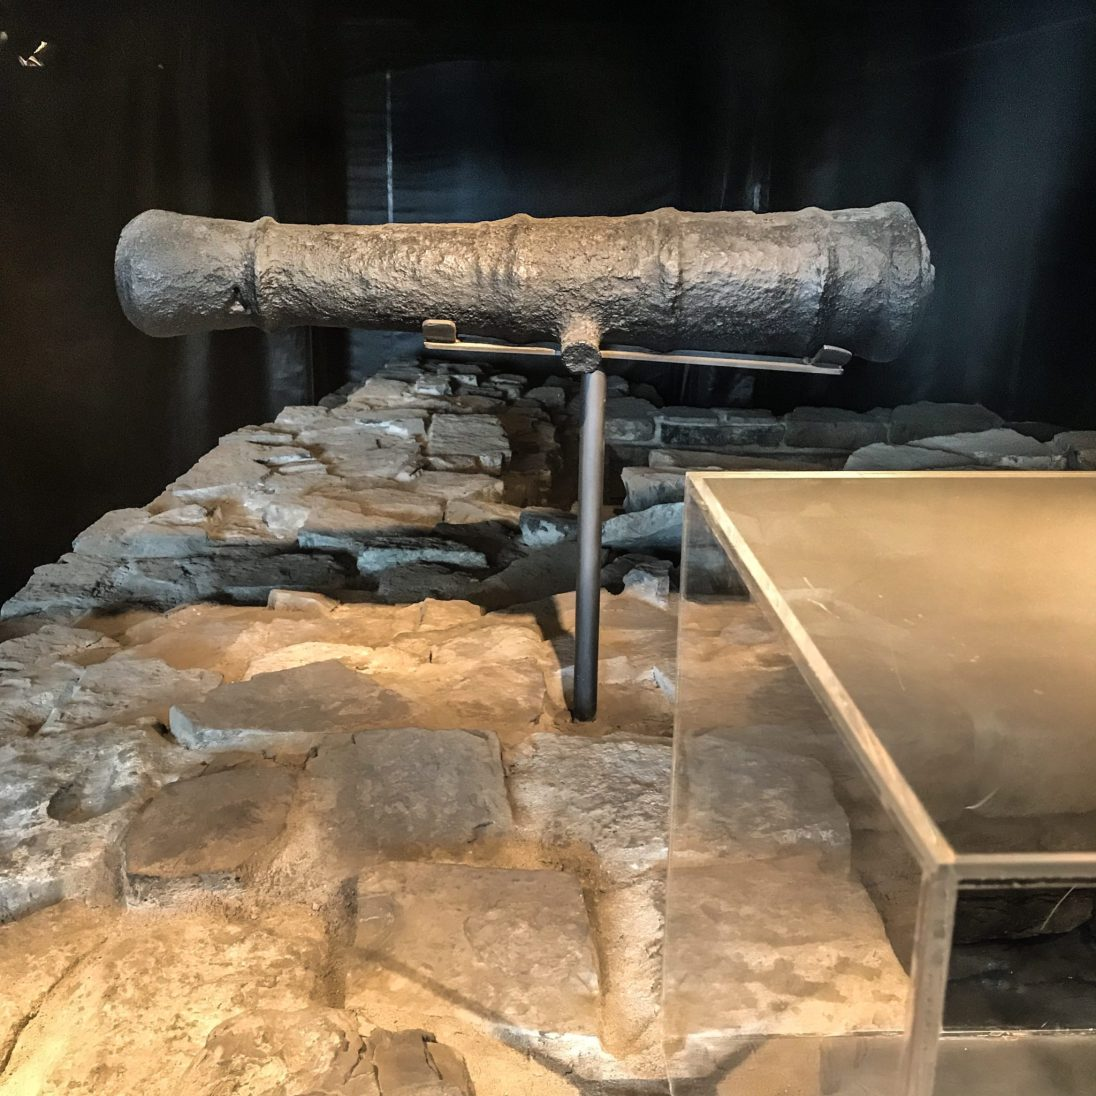 Cannon that was discovered during the excavation is now a centre piece that can even be seen in the parking lot and Artefact Bar.